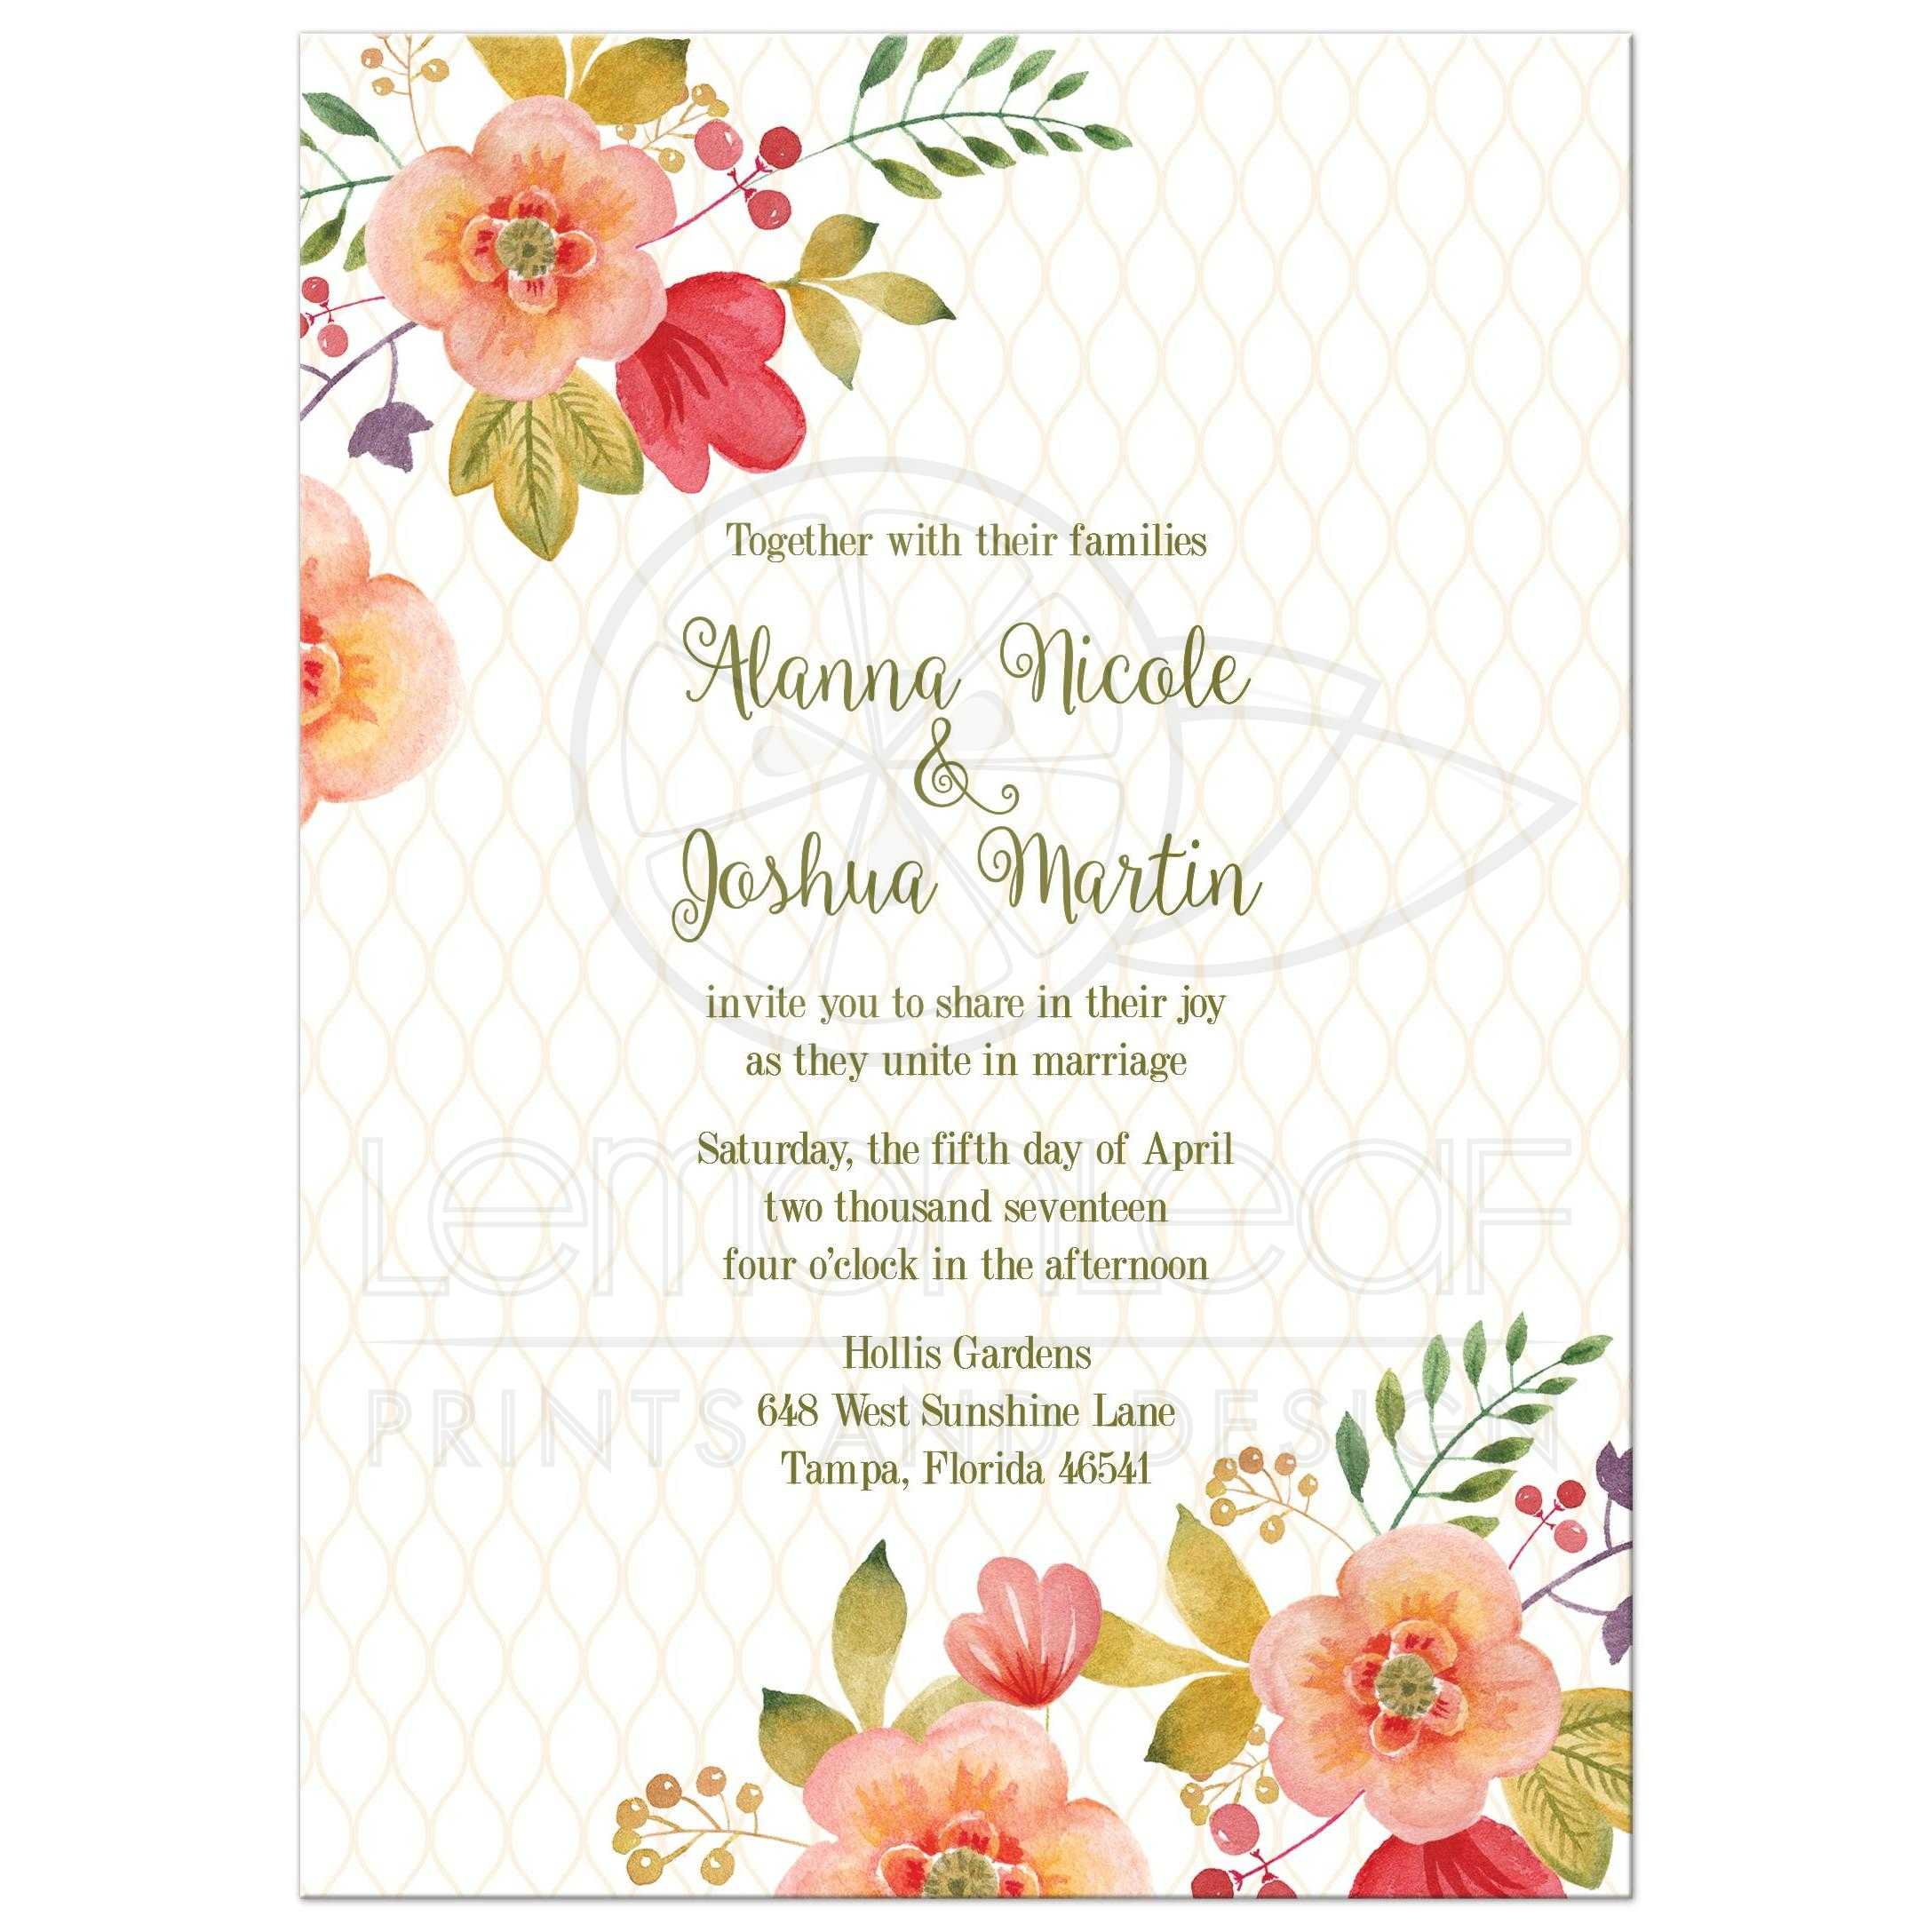 Floral Wedding Invitation - Olive Green and Pink